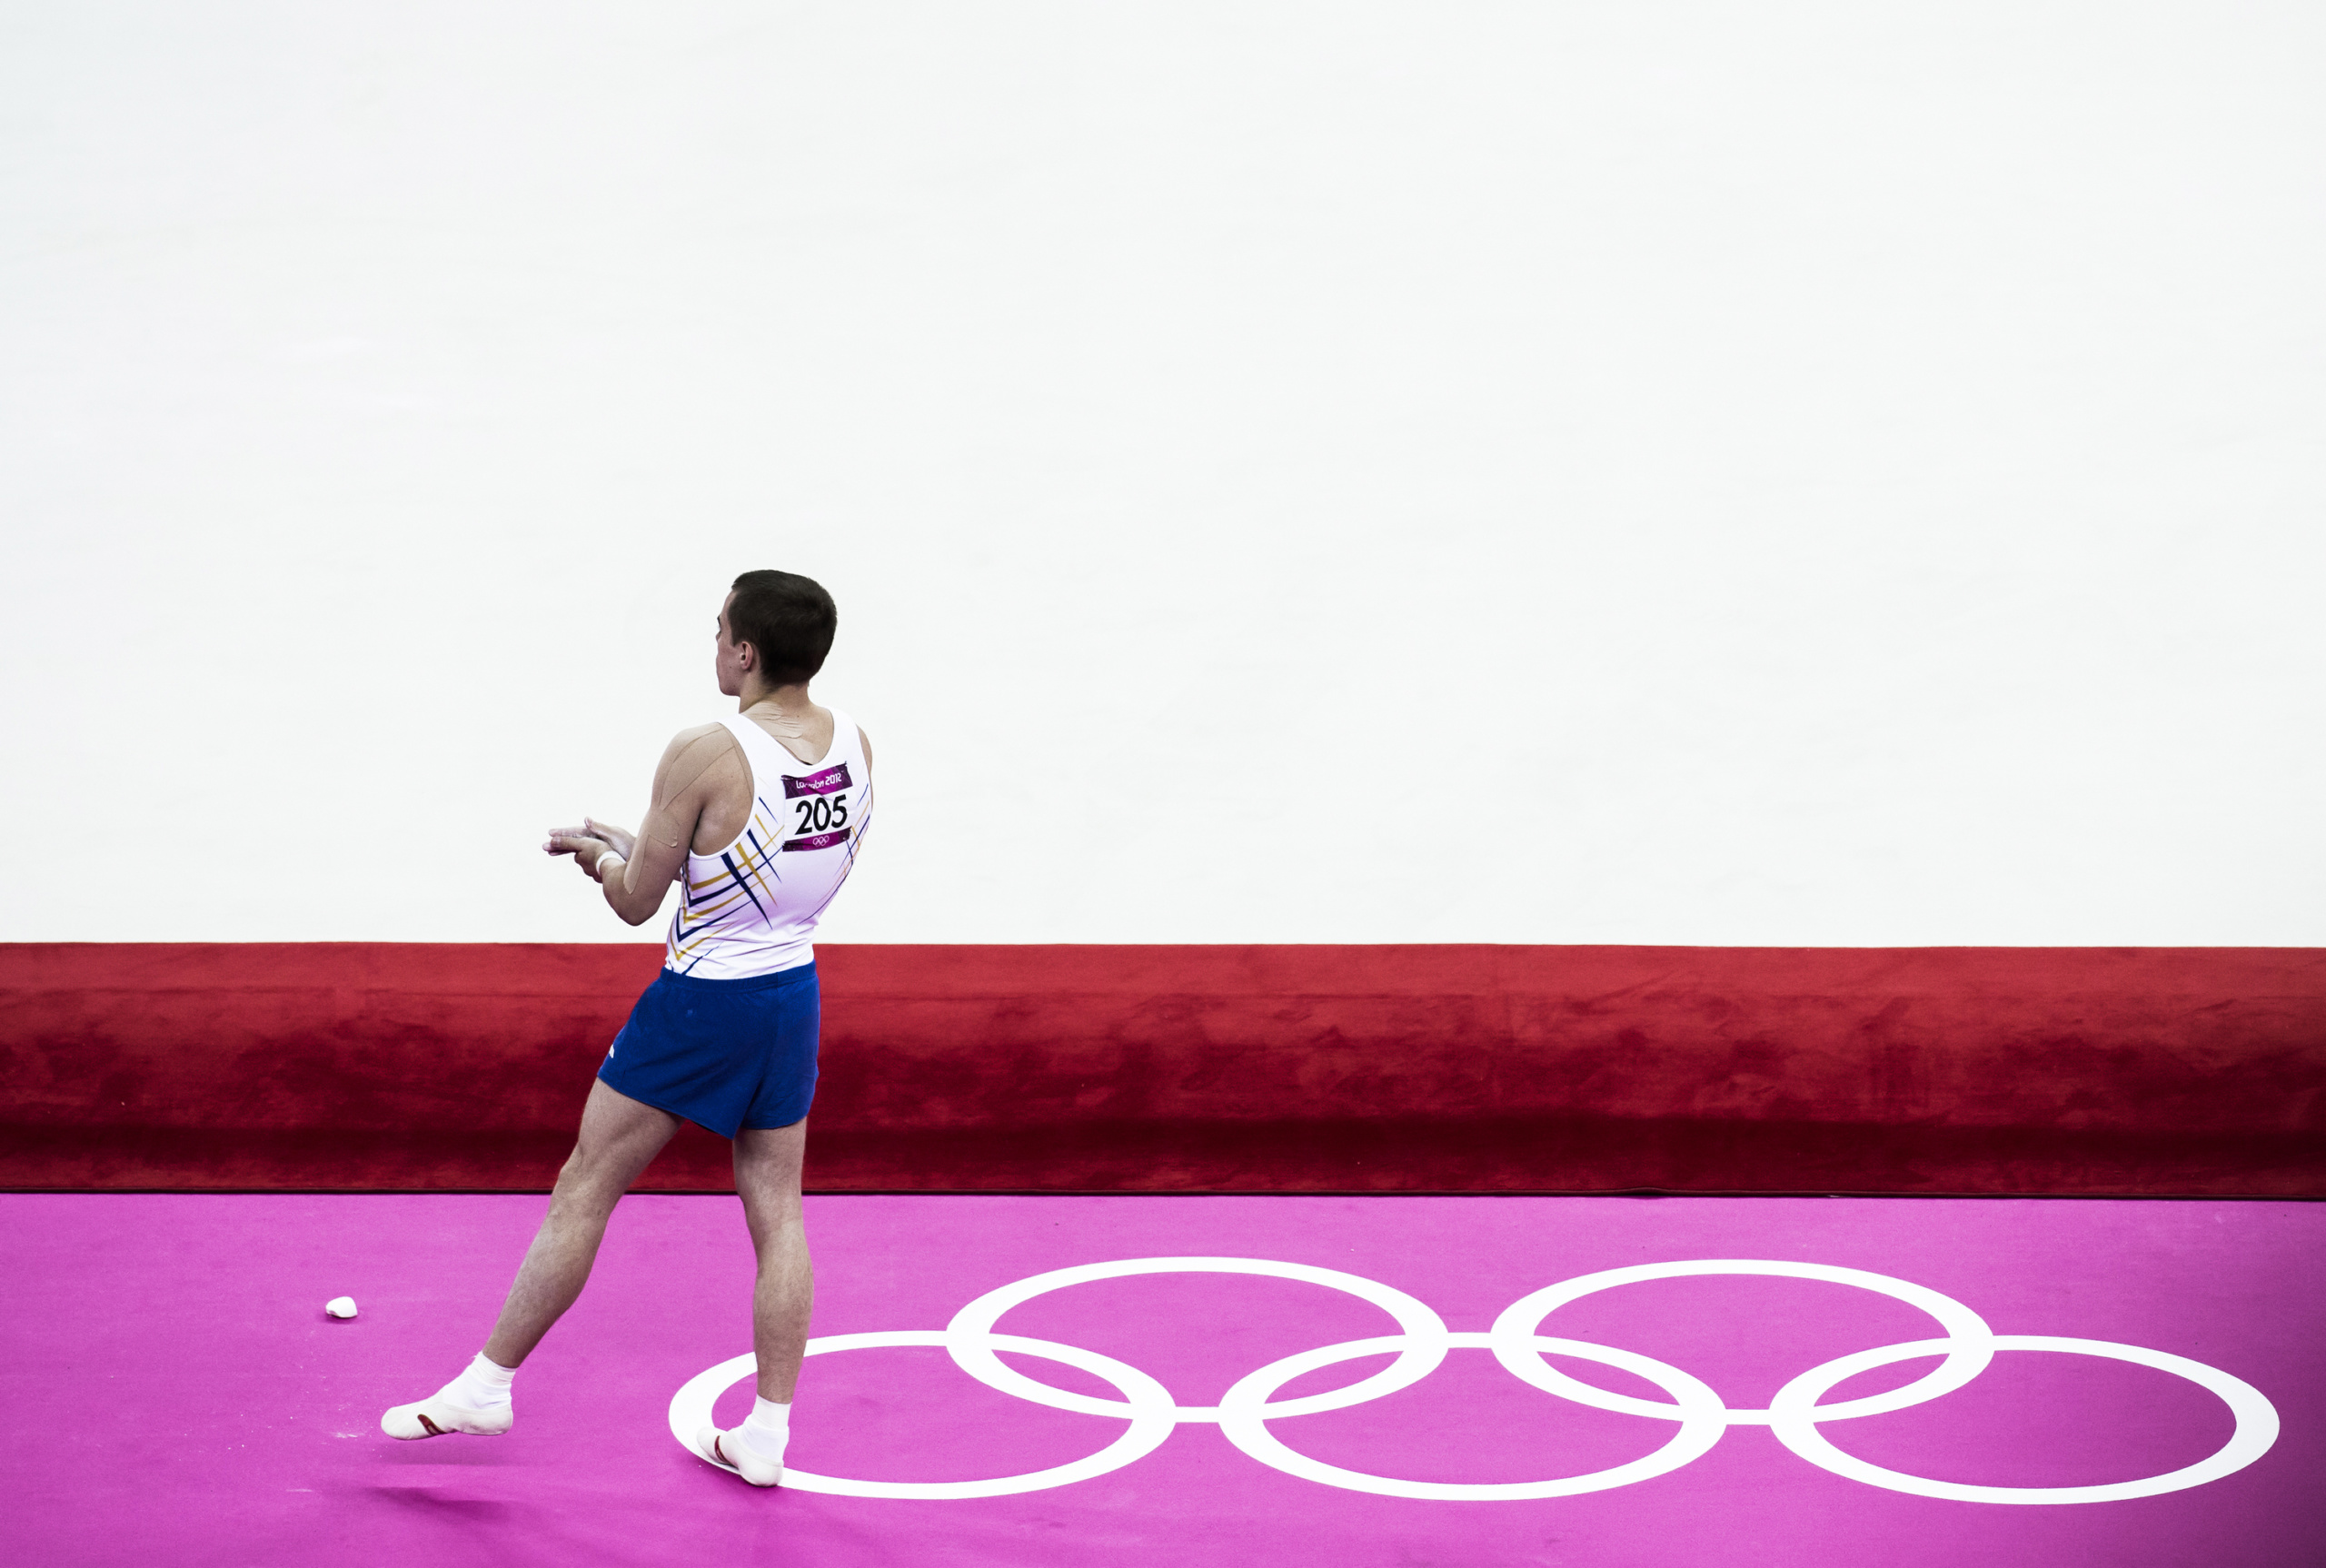 OLYMPICSLondon 2012Pictures taken for the International Olympic Committee.©IOC/Richard Juilliart